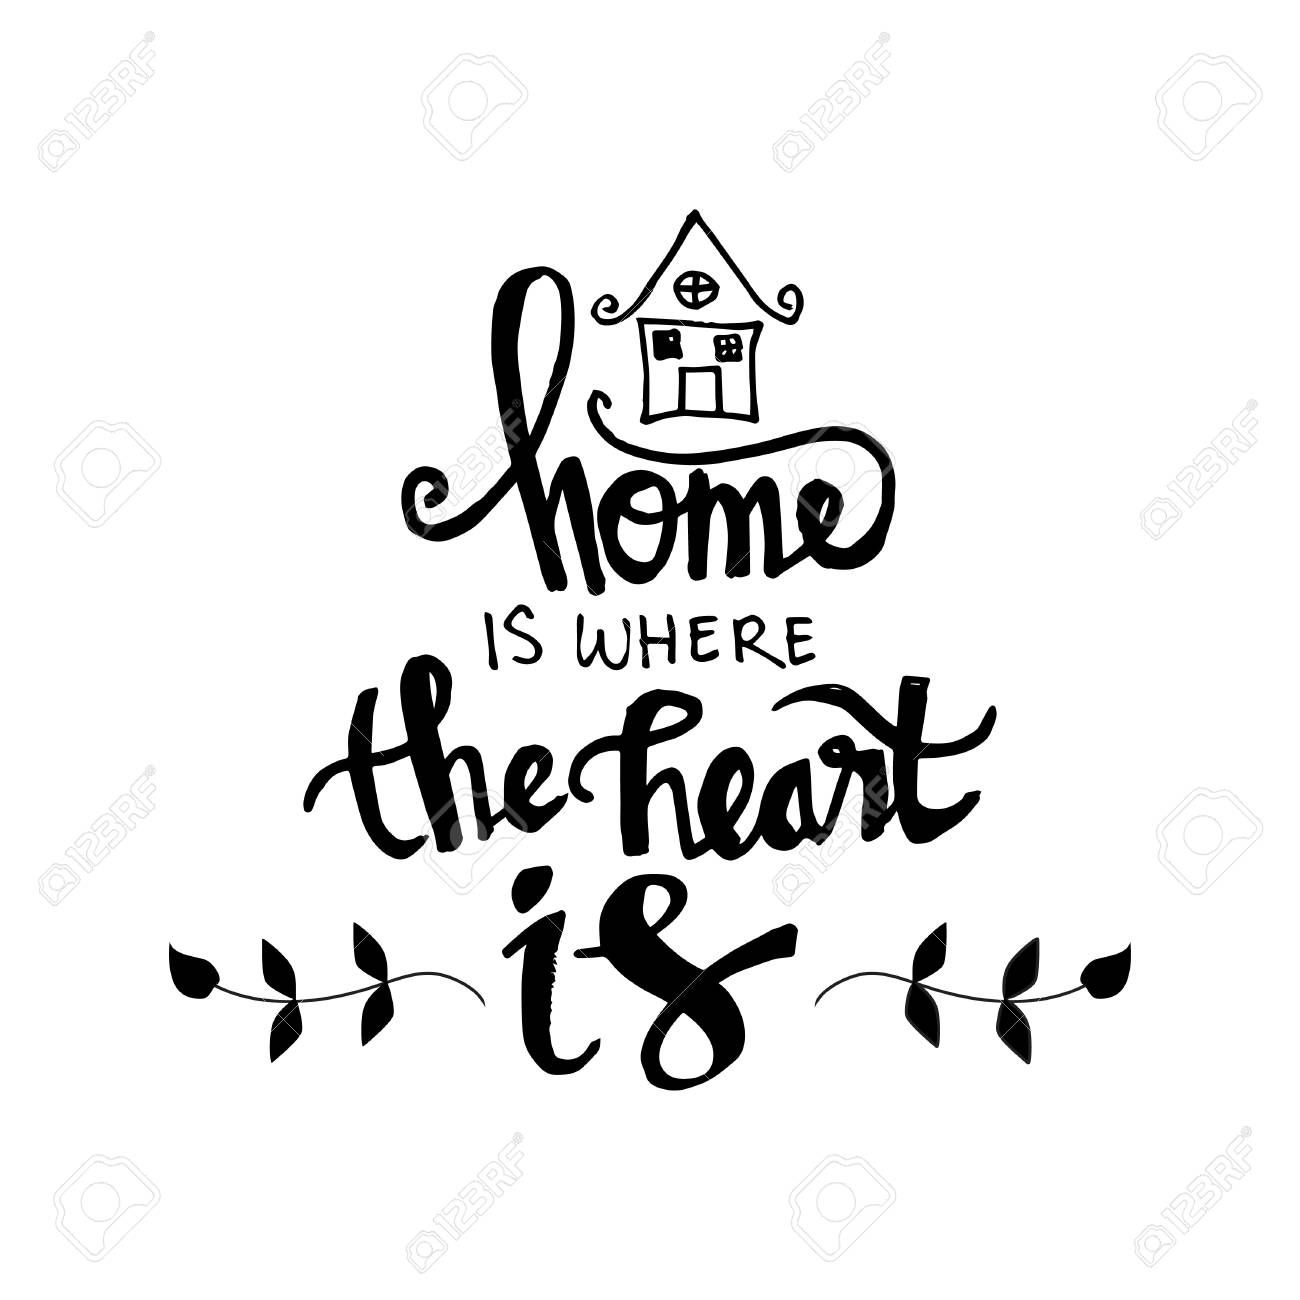 home is where your heart is inspirational quote isolated on plain